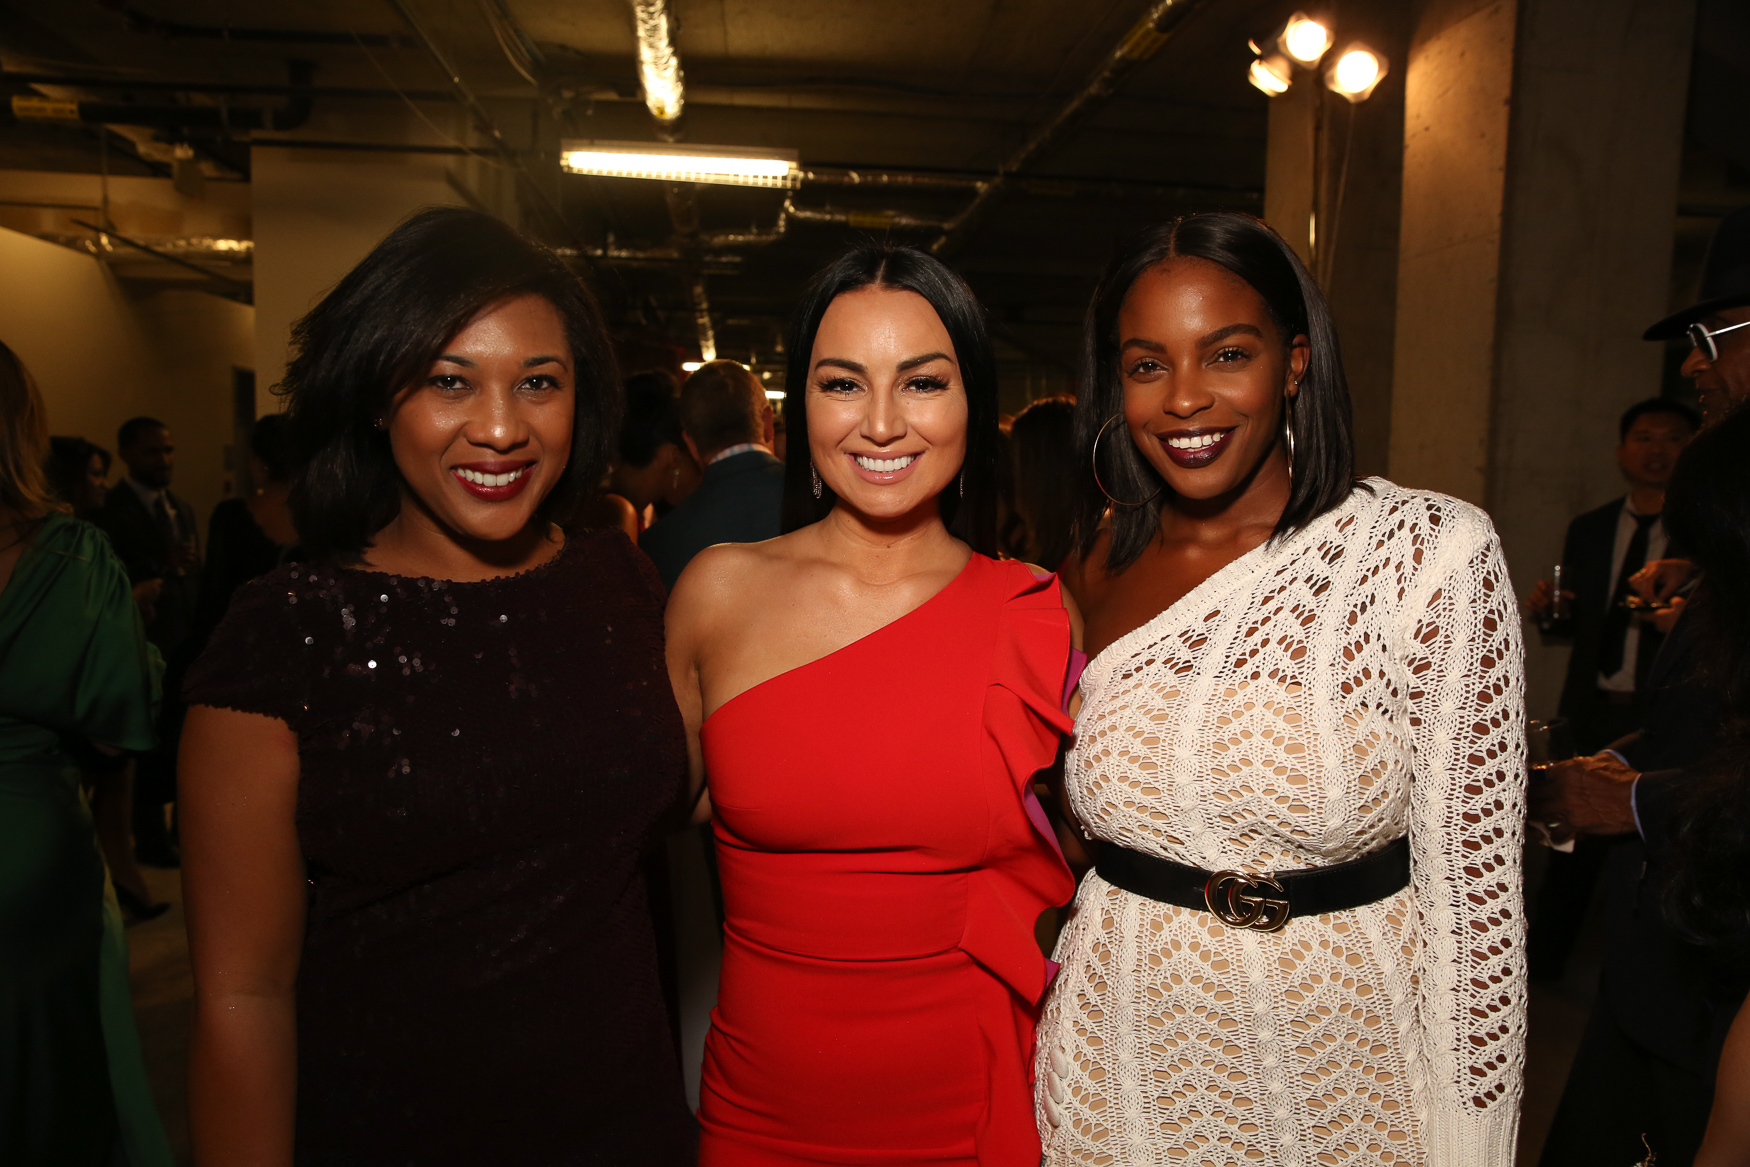 From left, Kyndall Douglas, Vivien Agbakoba and Stacey Rusch.{ }(Amanda Andrade-Rhoades/DC Refined)